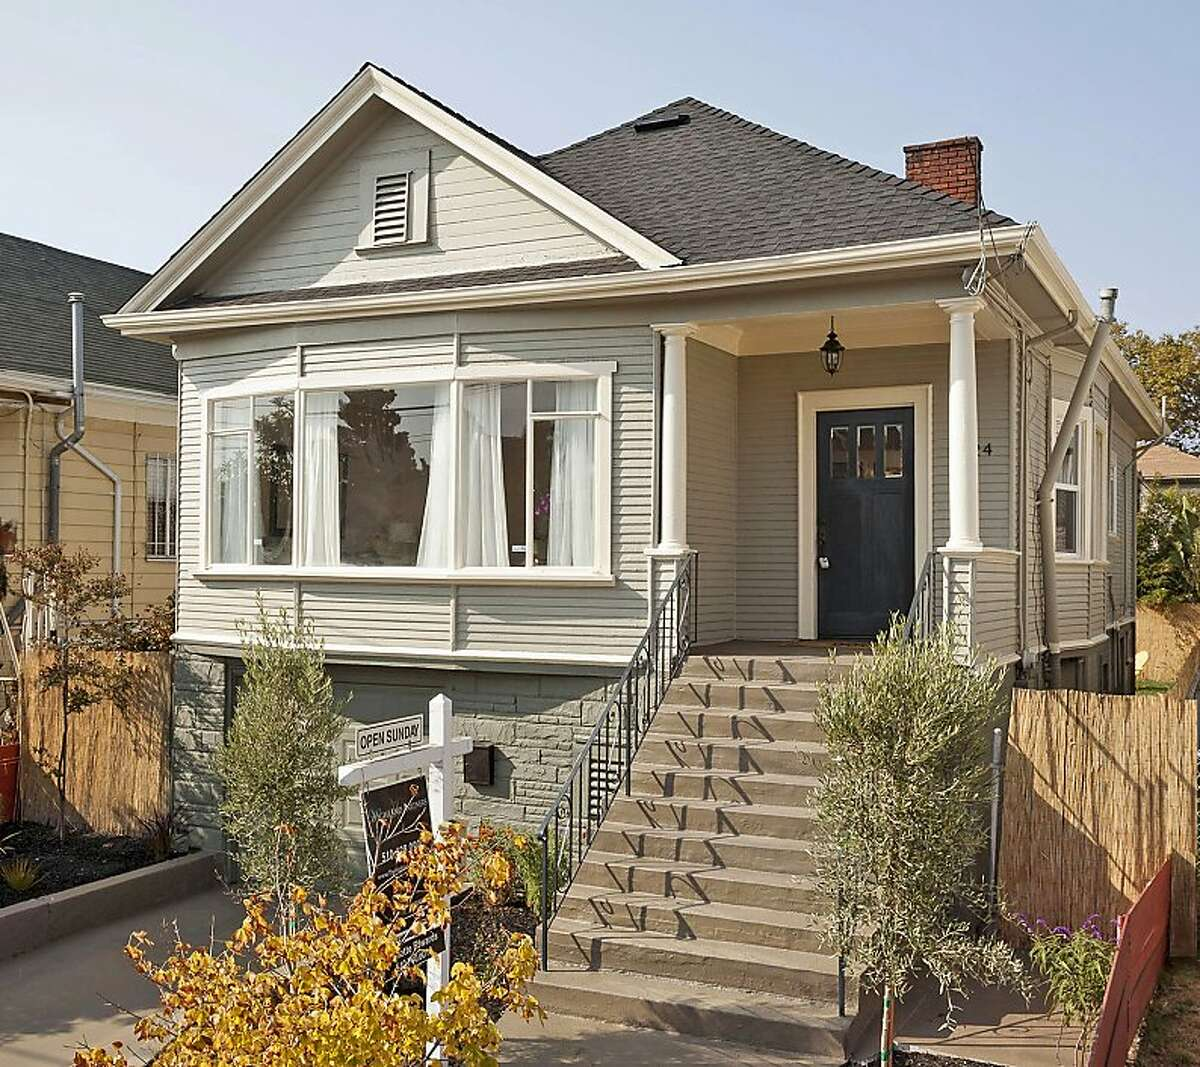 A bay window overlooks the front of this two-bedroom bungalow in the North Oakland, Berkeley, Emeryville area. Opportunities to purchase competitively priced homes are drawing young professionals to this vibrant neighborhood.